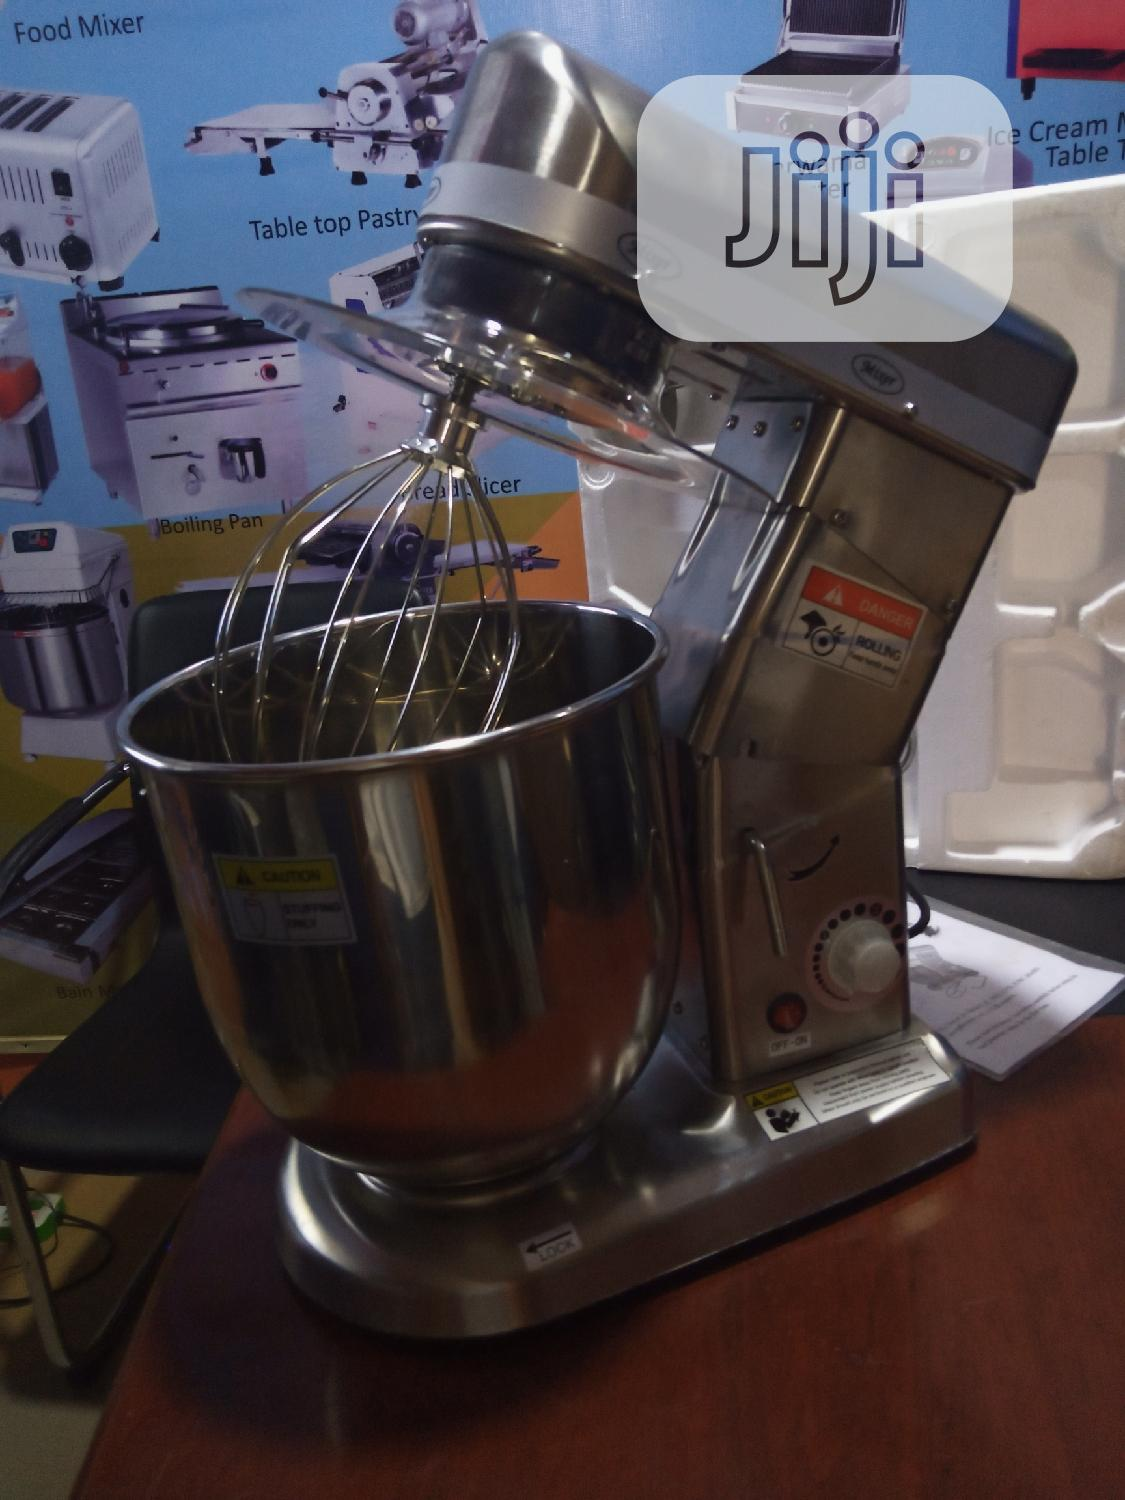 Cake Mixer 10liters Stainless